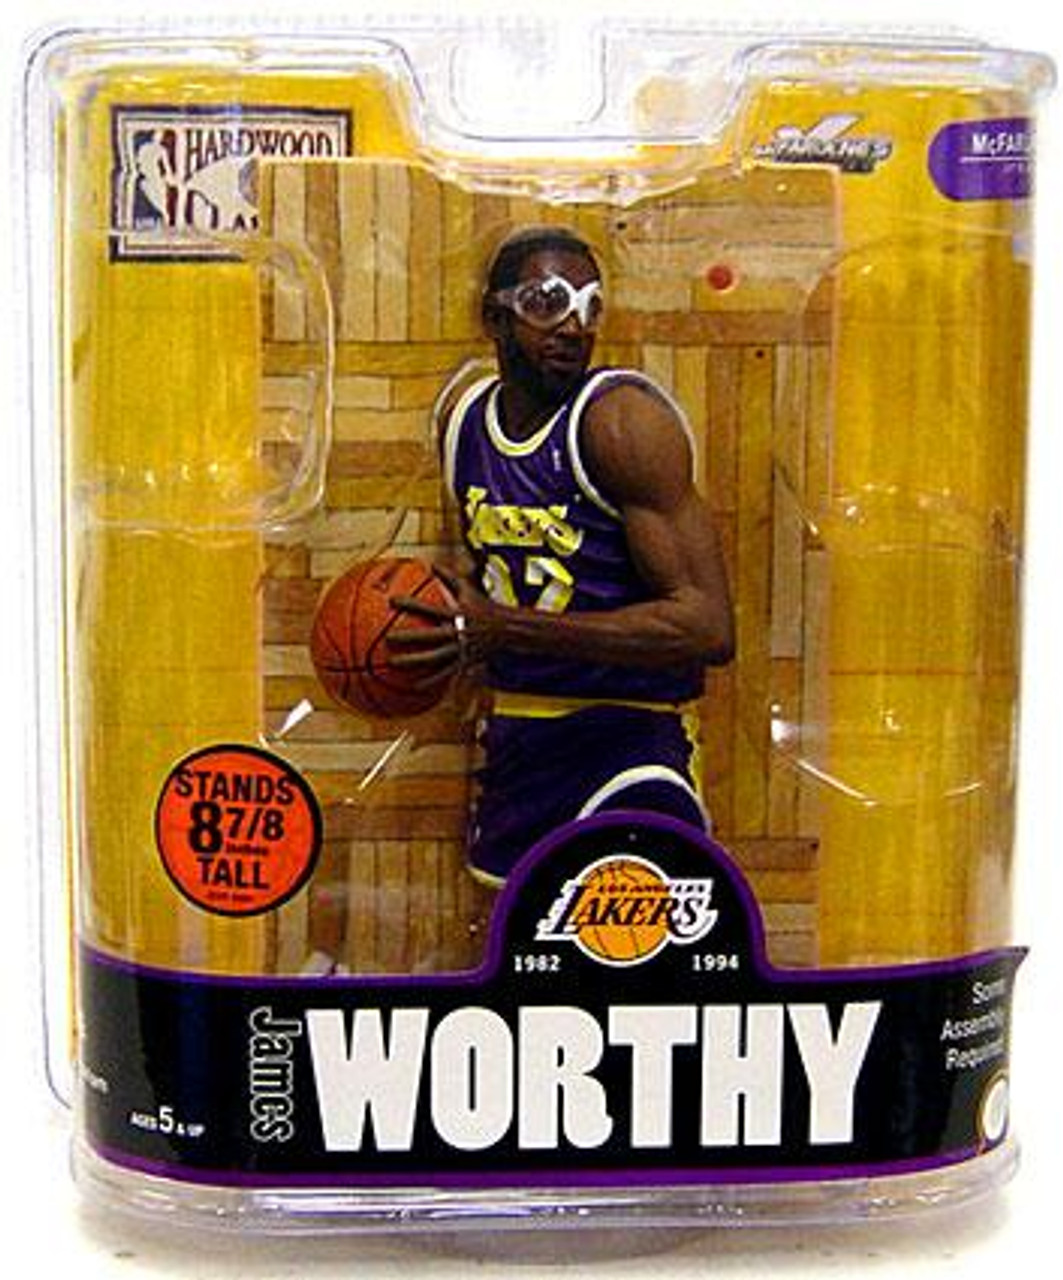 McFarlane Toys NBA Los Angeles Lakers Sports Picks Legends Series 3 James Worthy Action Figure [Purple Jersey Variant]